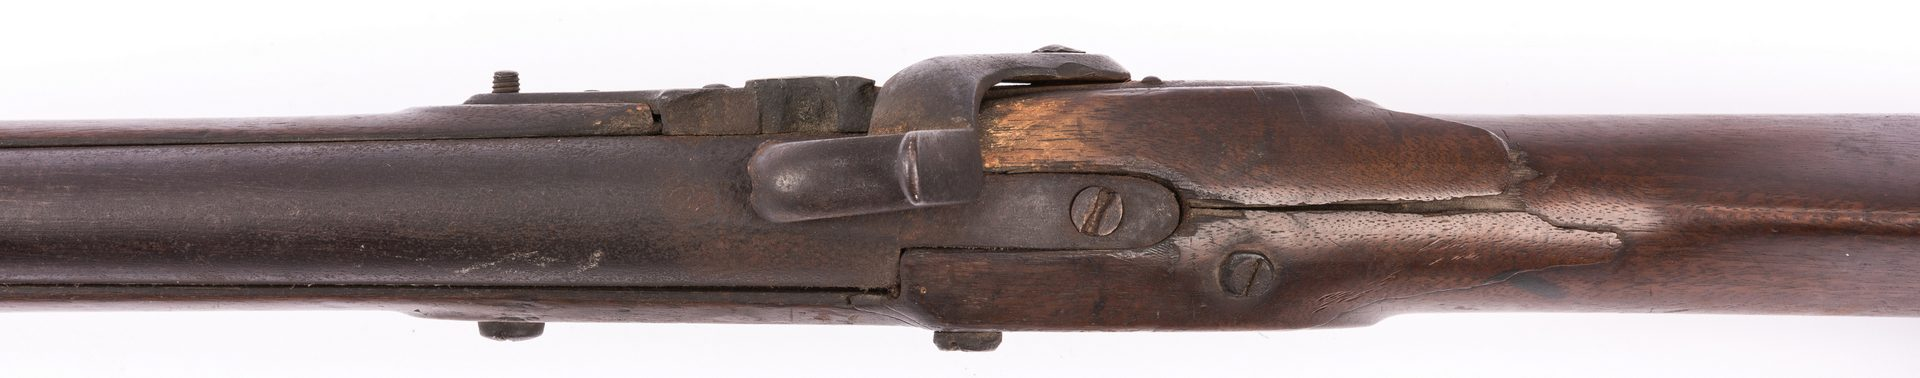 Lot 504: U.S. Asa Waters Contract Musket, 1829